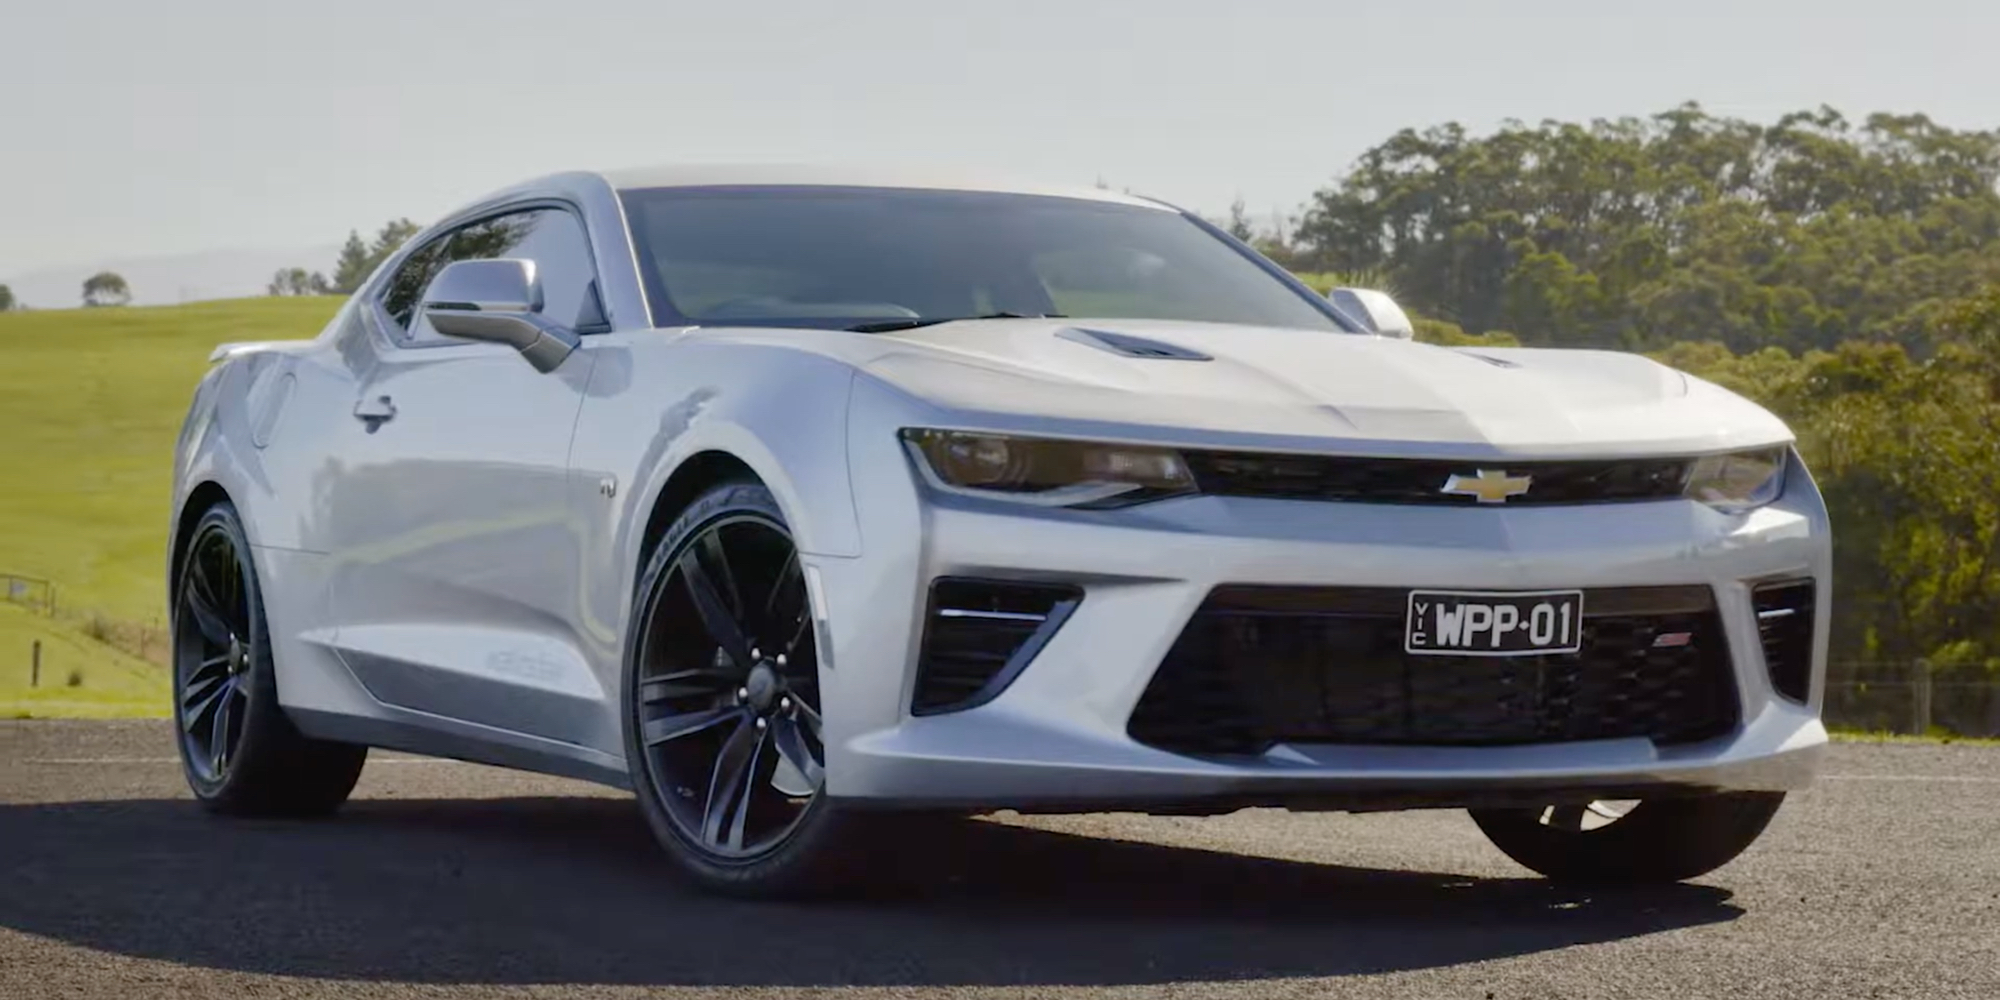 Walkinshaw Power Pack For Chevrolet Camaro Ss Unveiled | Gm 2021 Chevrolet Camaro 2Ss Mods, Near Me, Supercharger